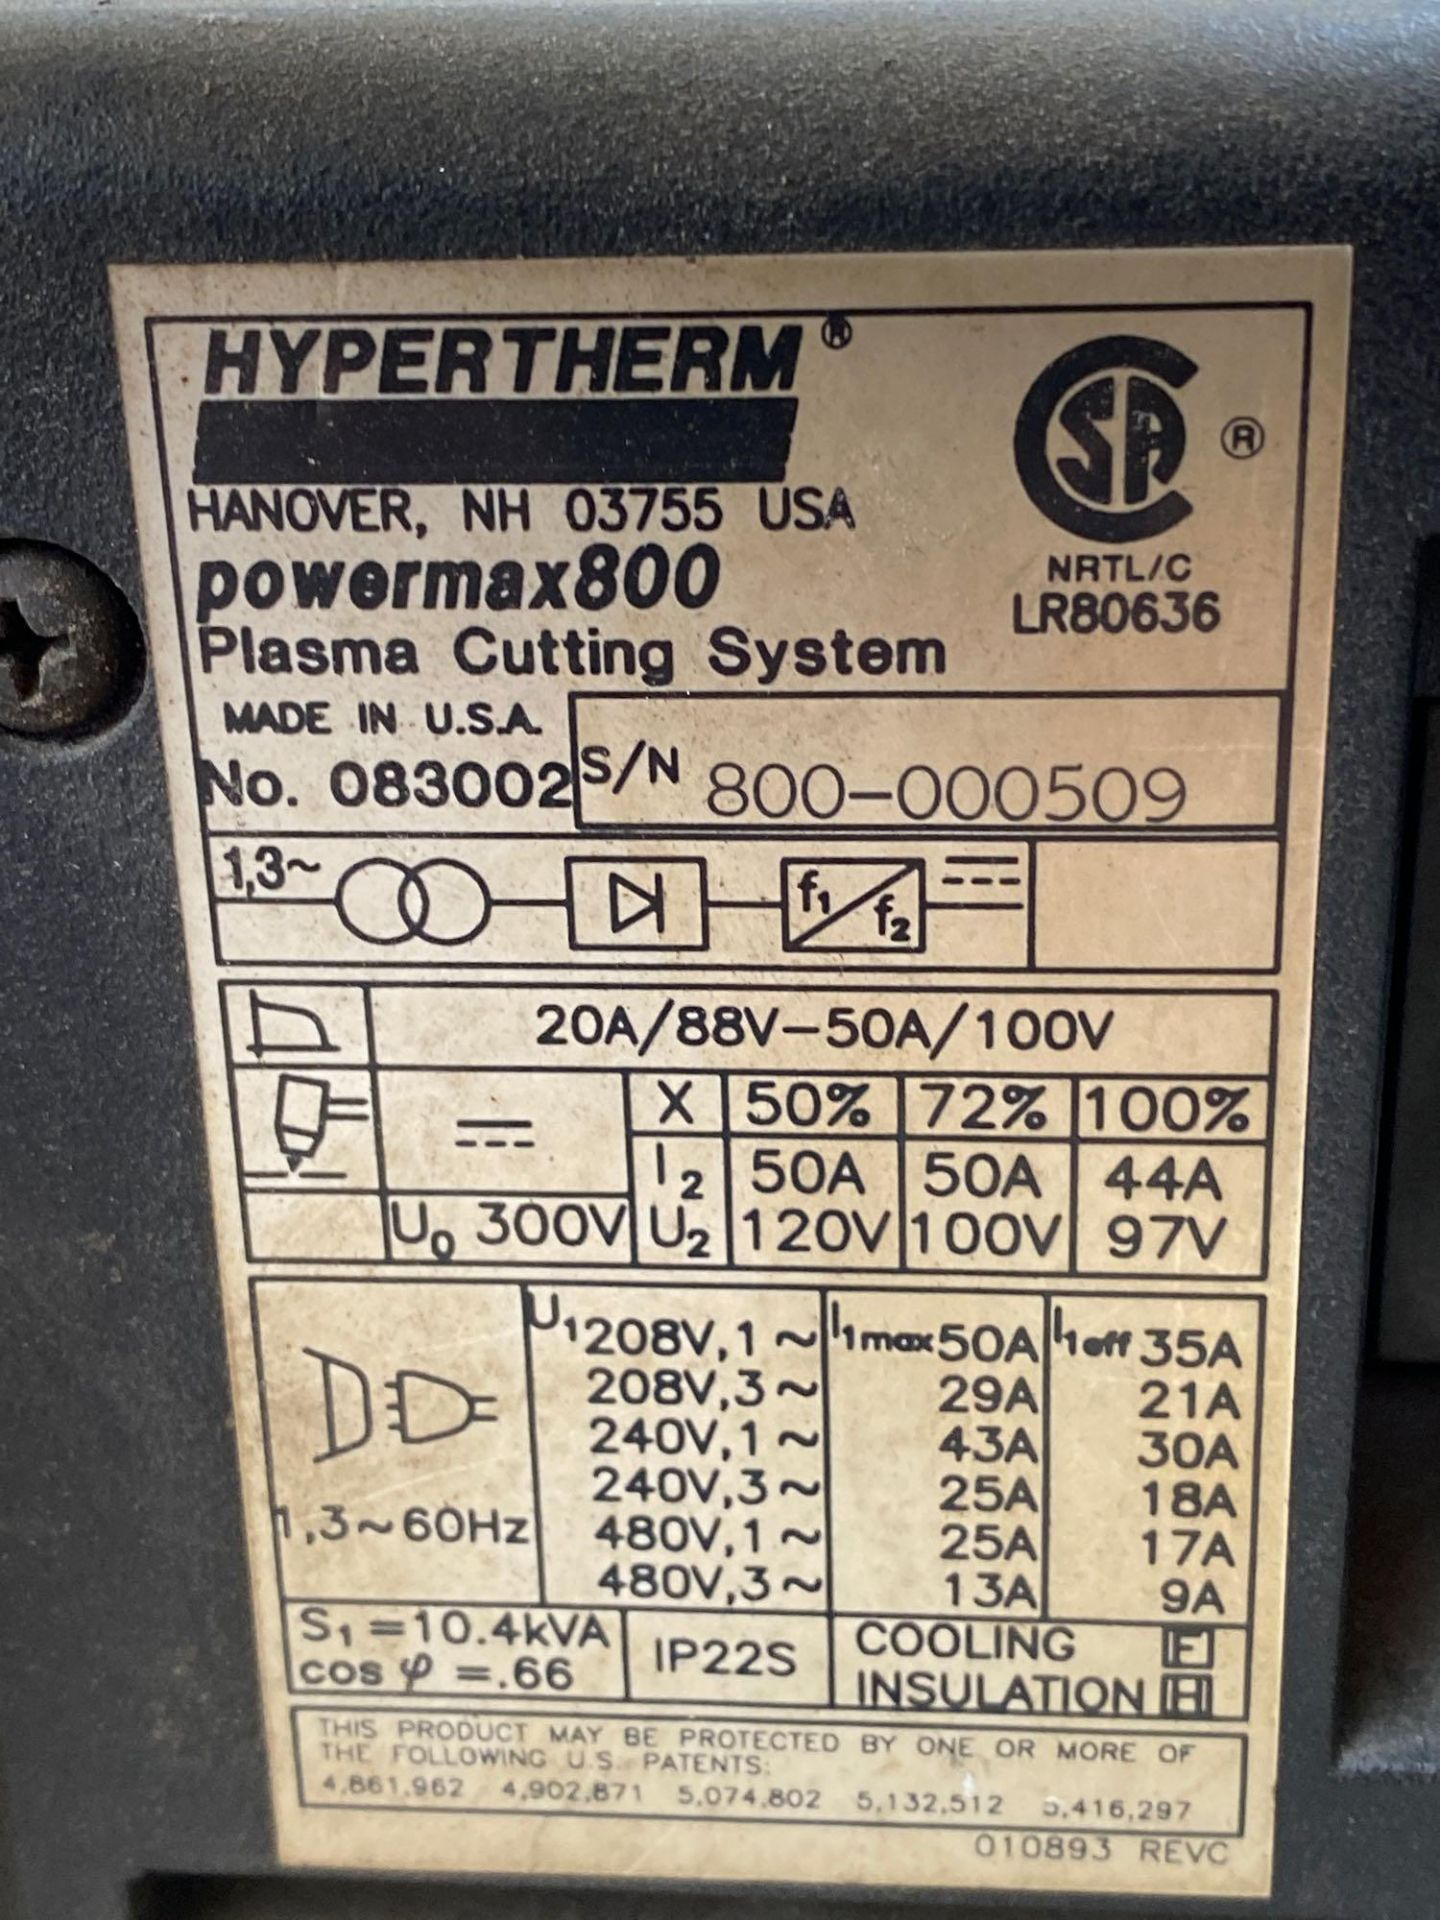 Power Max 800 Hypertherm Plasma Cutter - Image 6 of 8